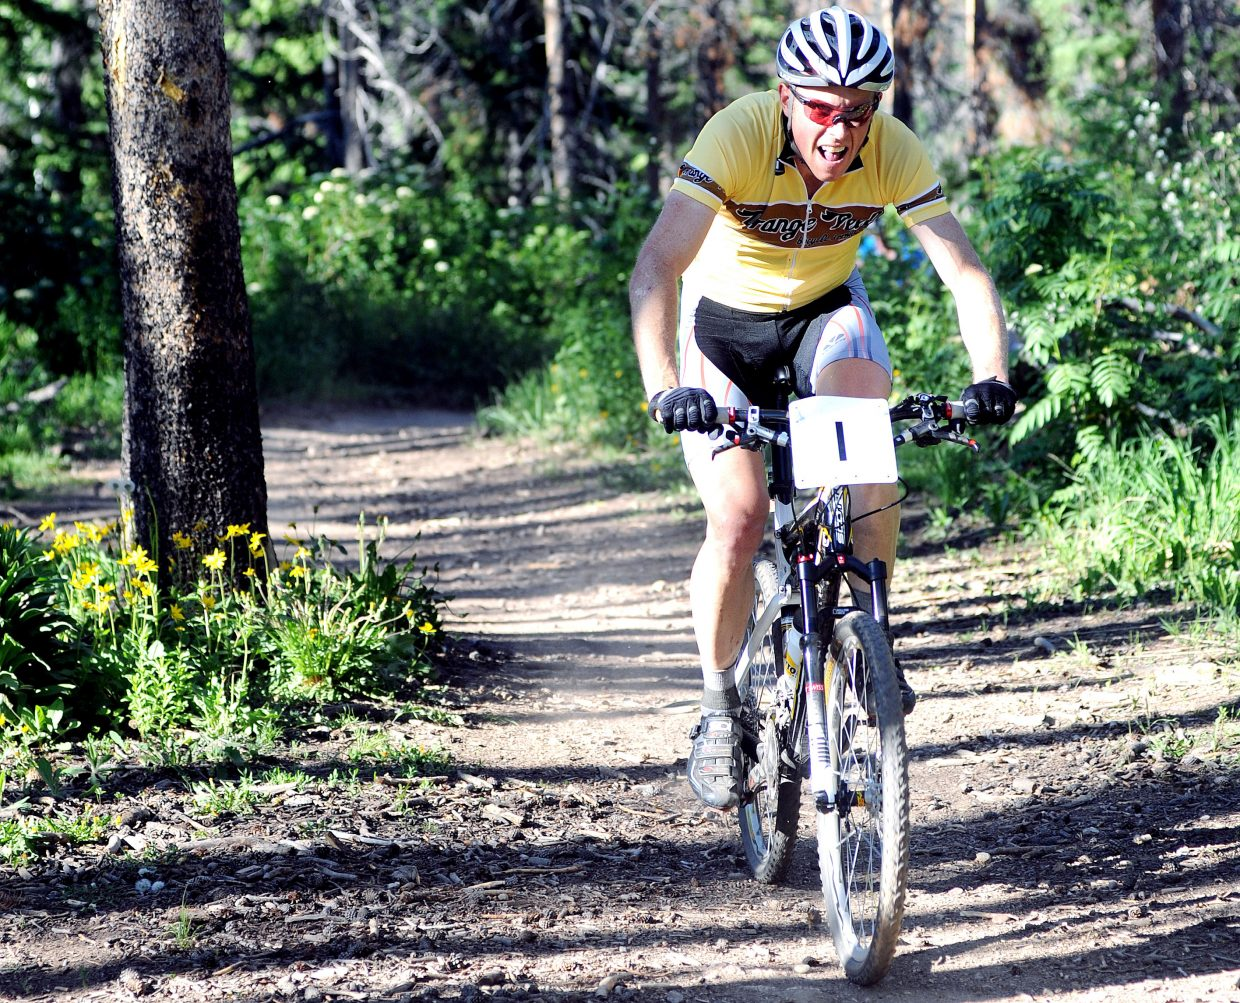 Barkley Robinson pedals through the woods Wednesday during the Thunderhead Hill Climb Town Challenge race on Mount Werner. Robinson won the men's division of the race.